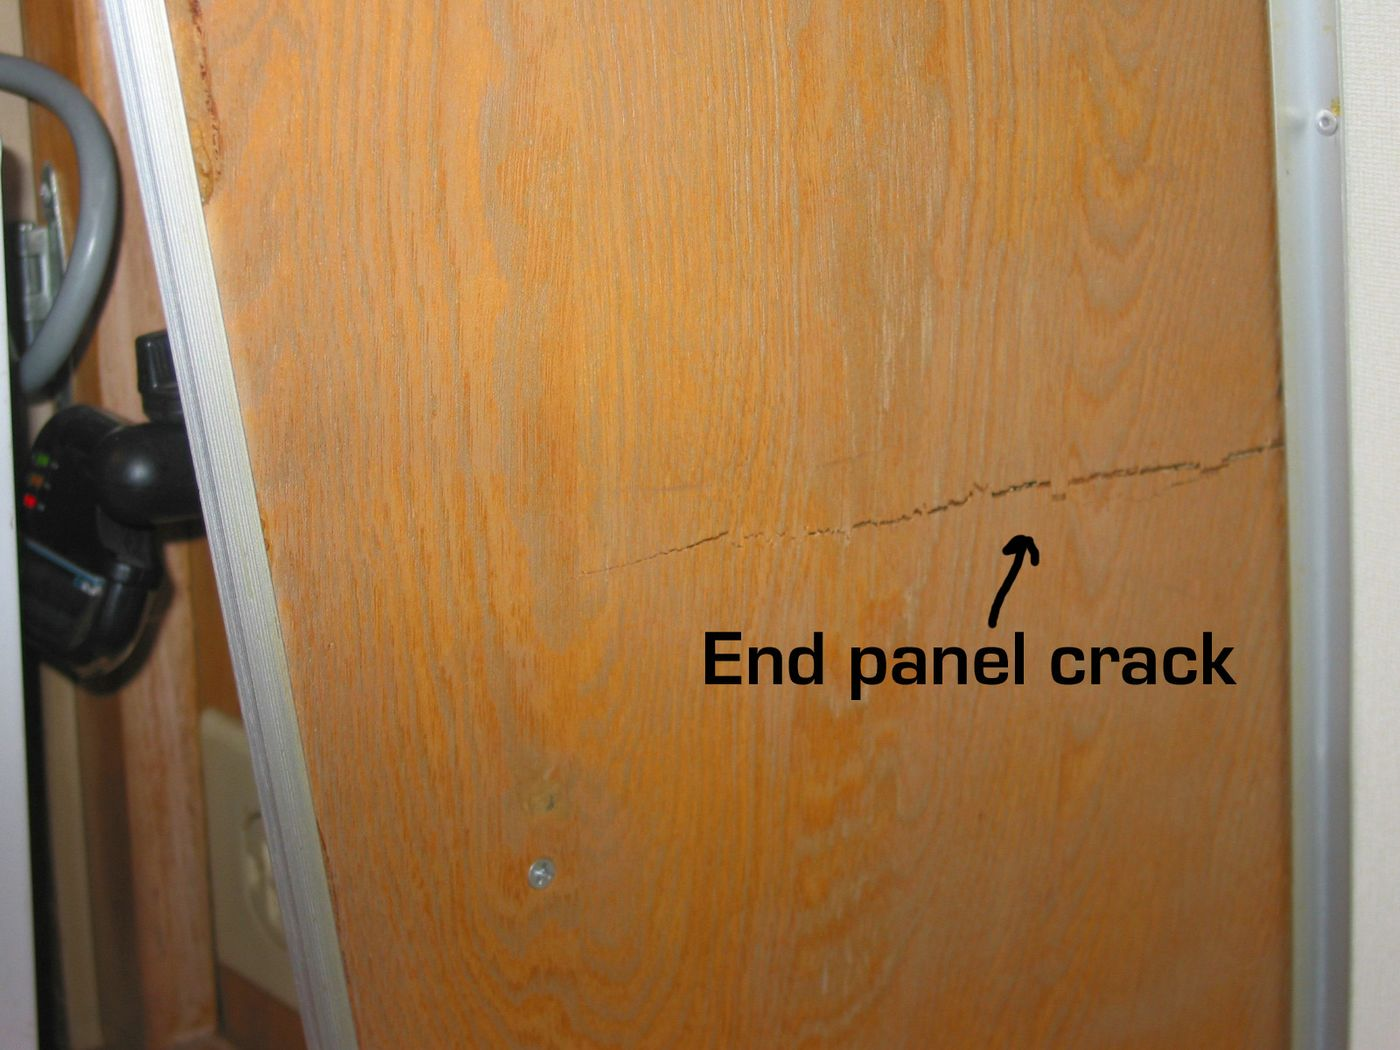 Click image for larger version  Name:end panel crack 1 [%P].jpg Views:69 Size:169.4 KB ID:42870